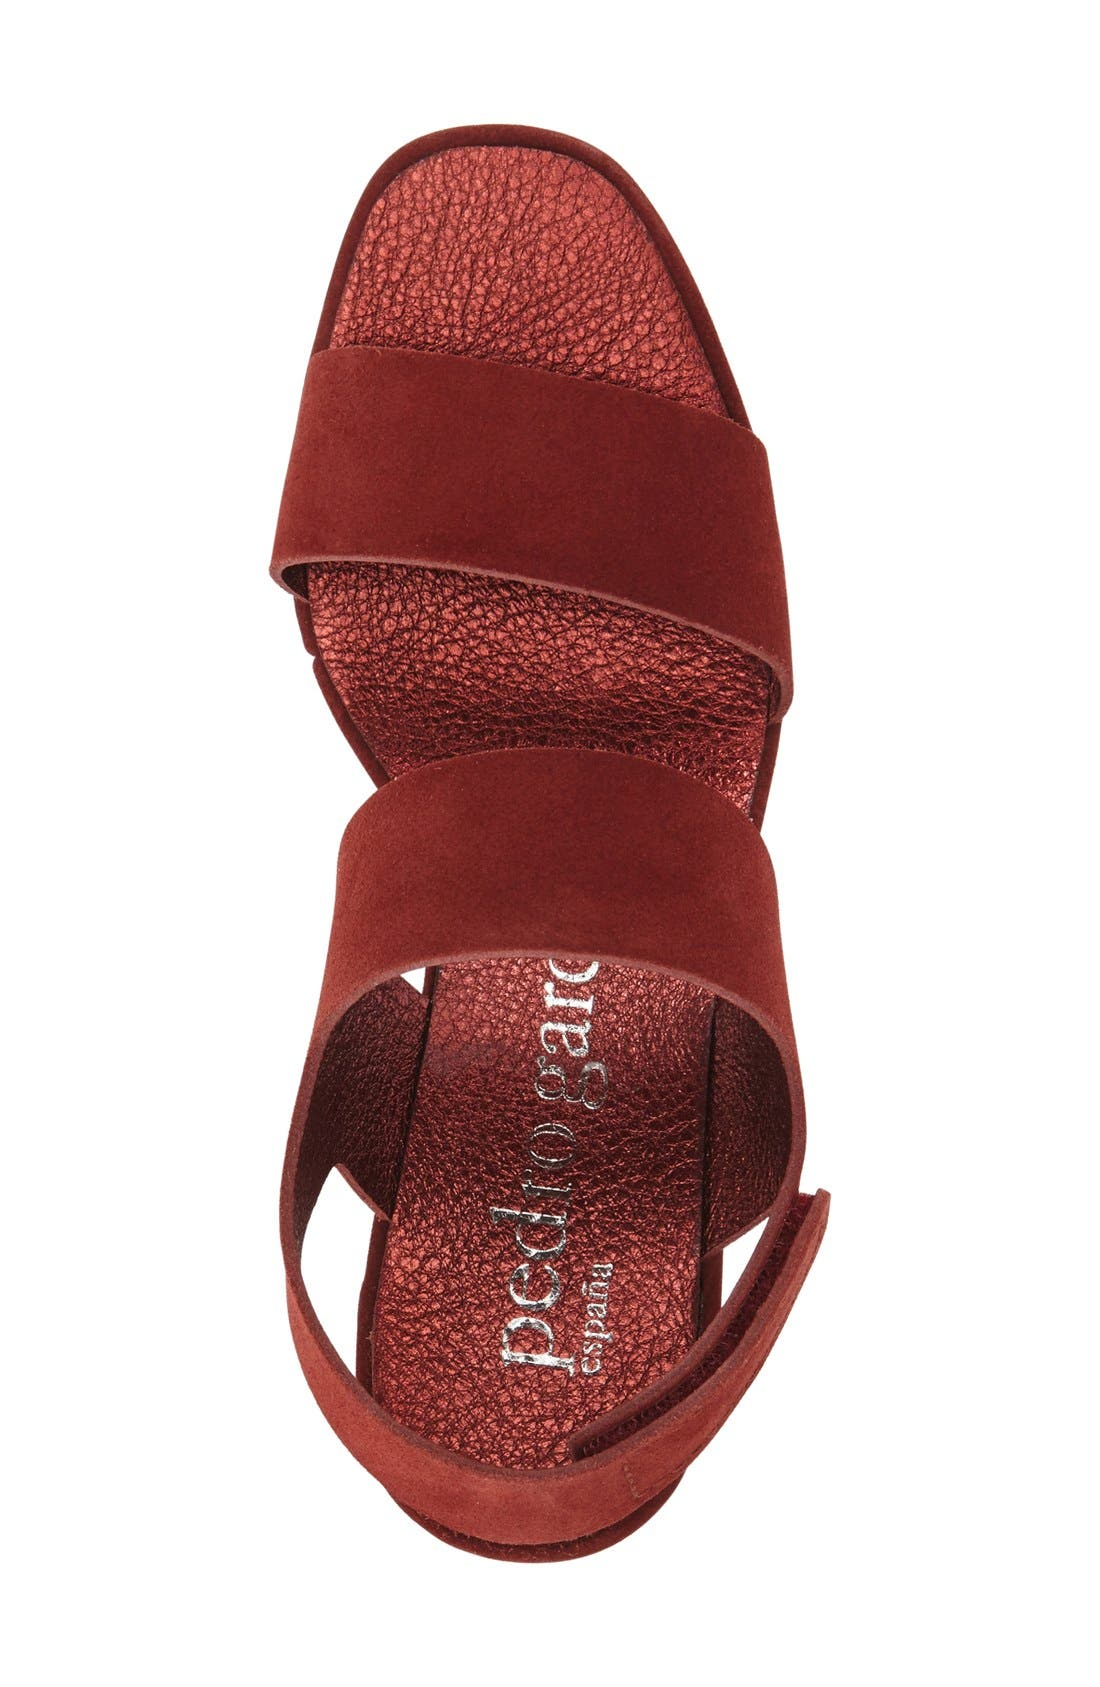 'Fiona' Wedge Sandal,                             Alternate thumbnail 3, color,                             Red Leather